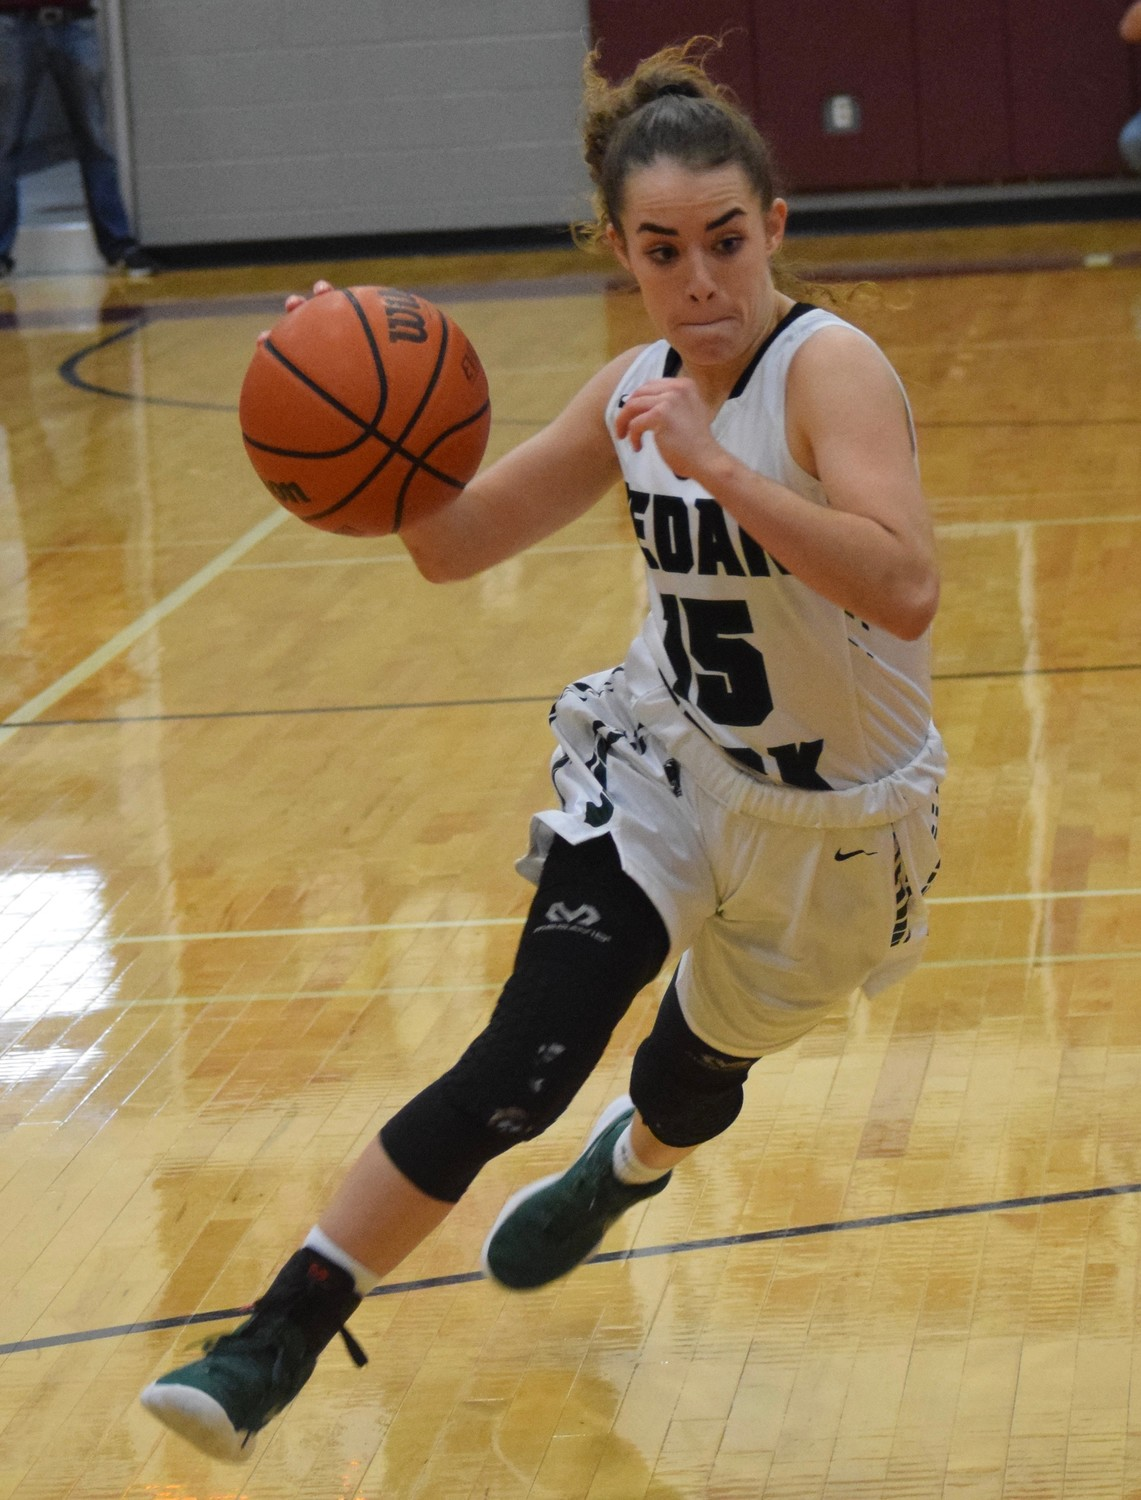 Kilee West and Cedar Park made it to the regional semifinals for the first time in school history and pushed their winning streak to 16 games on Tuesday night with a 58-31 win against Magnolia West 58-31 at Flatonia High School.